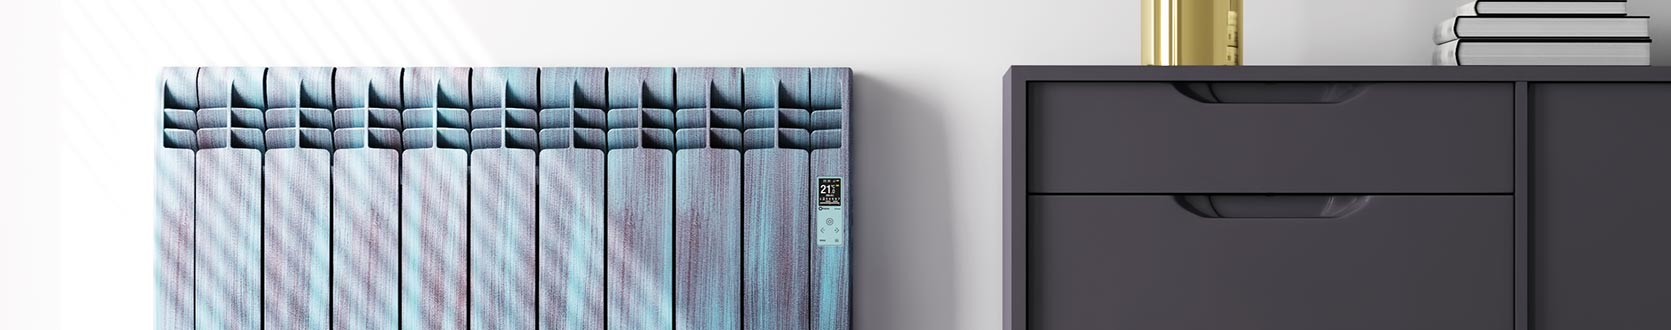 Rointe amazon designer electric radiator with green and brown oxidation finish